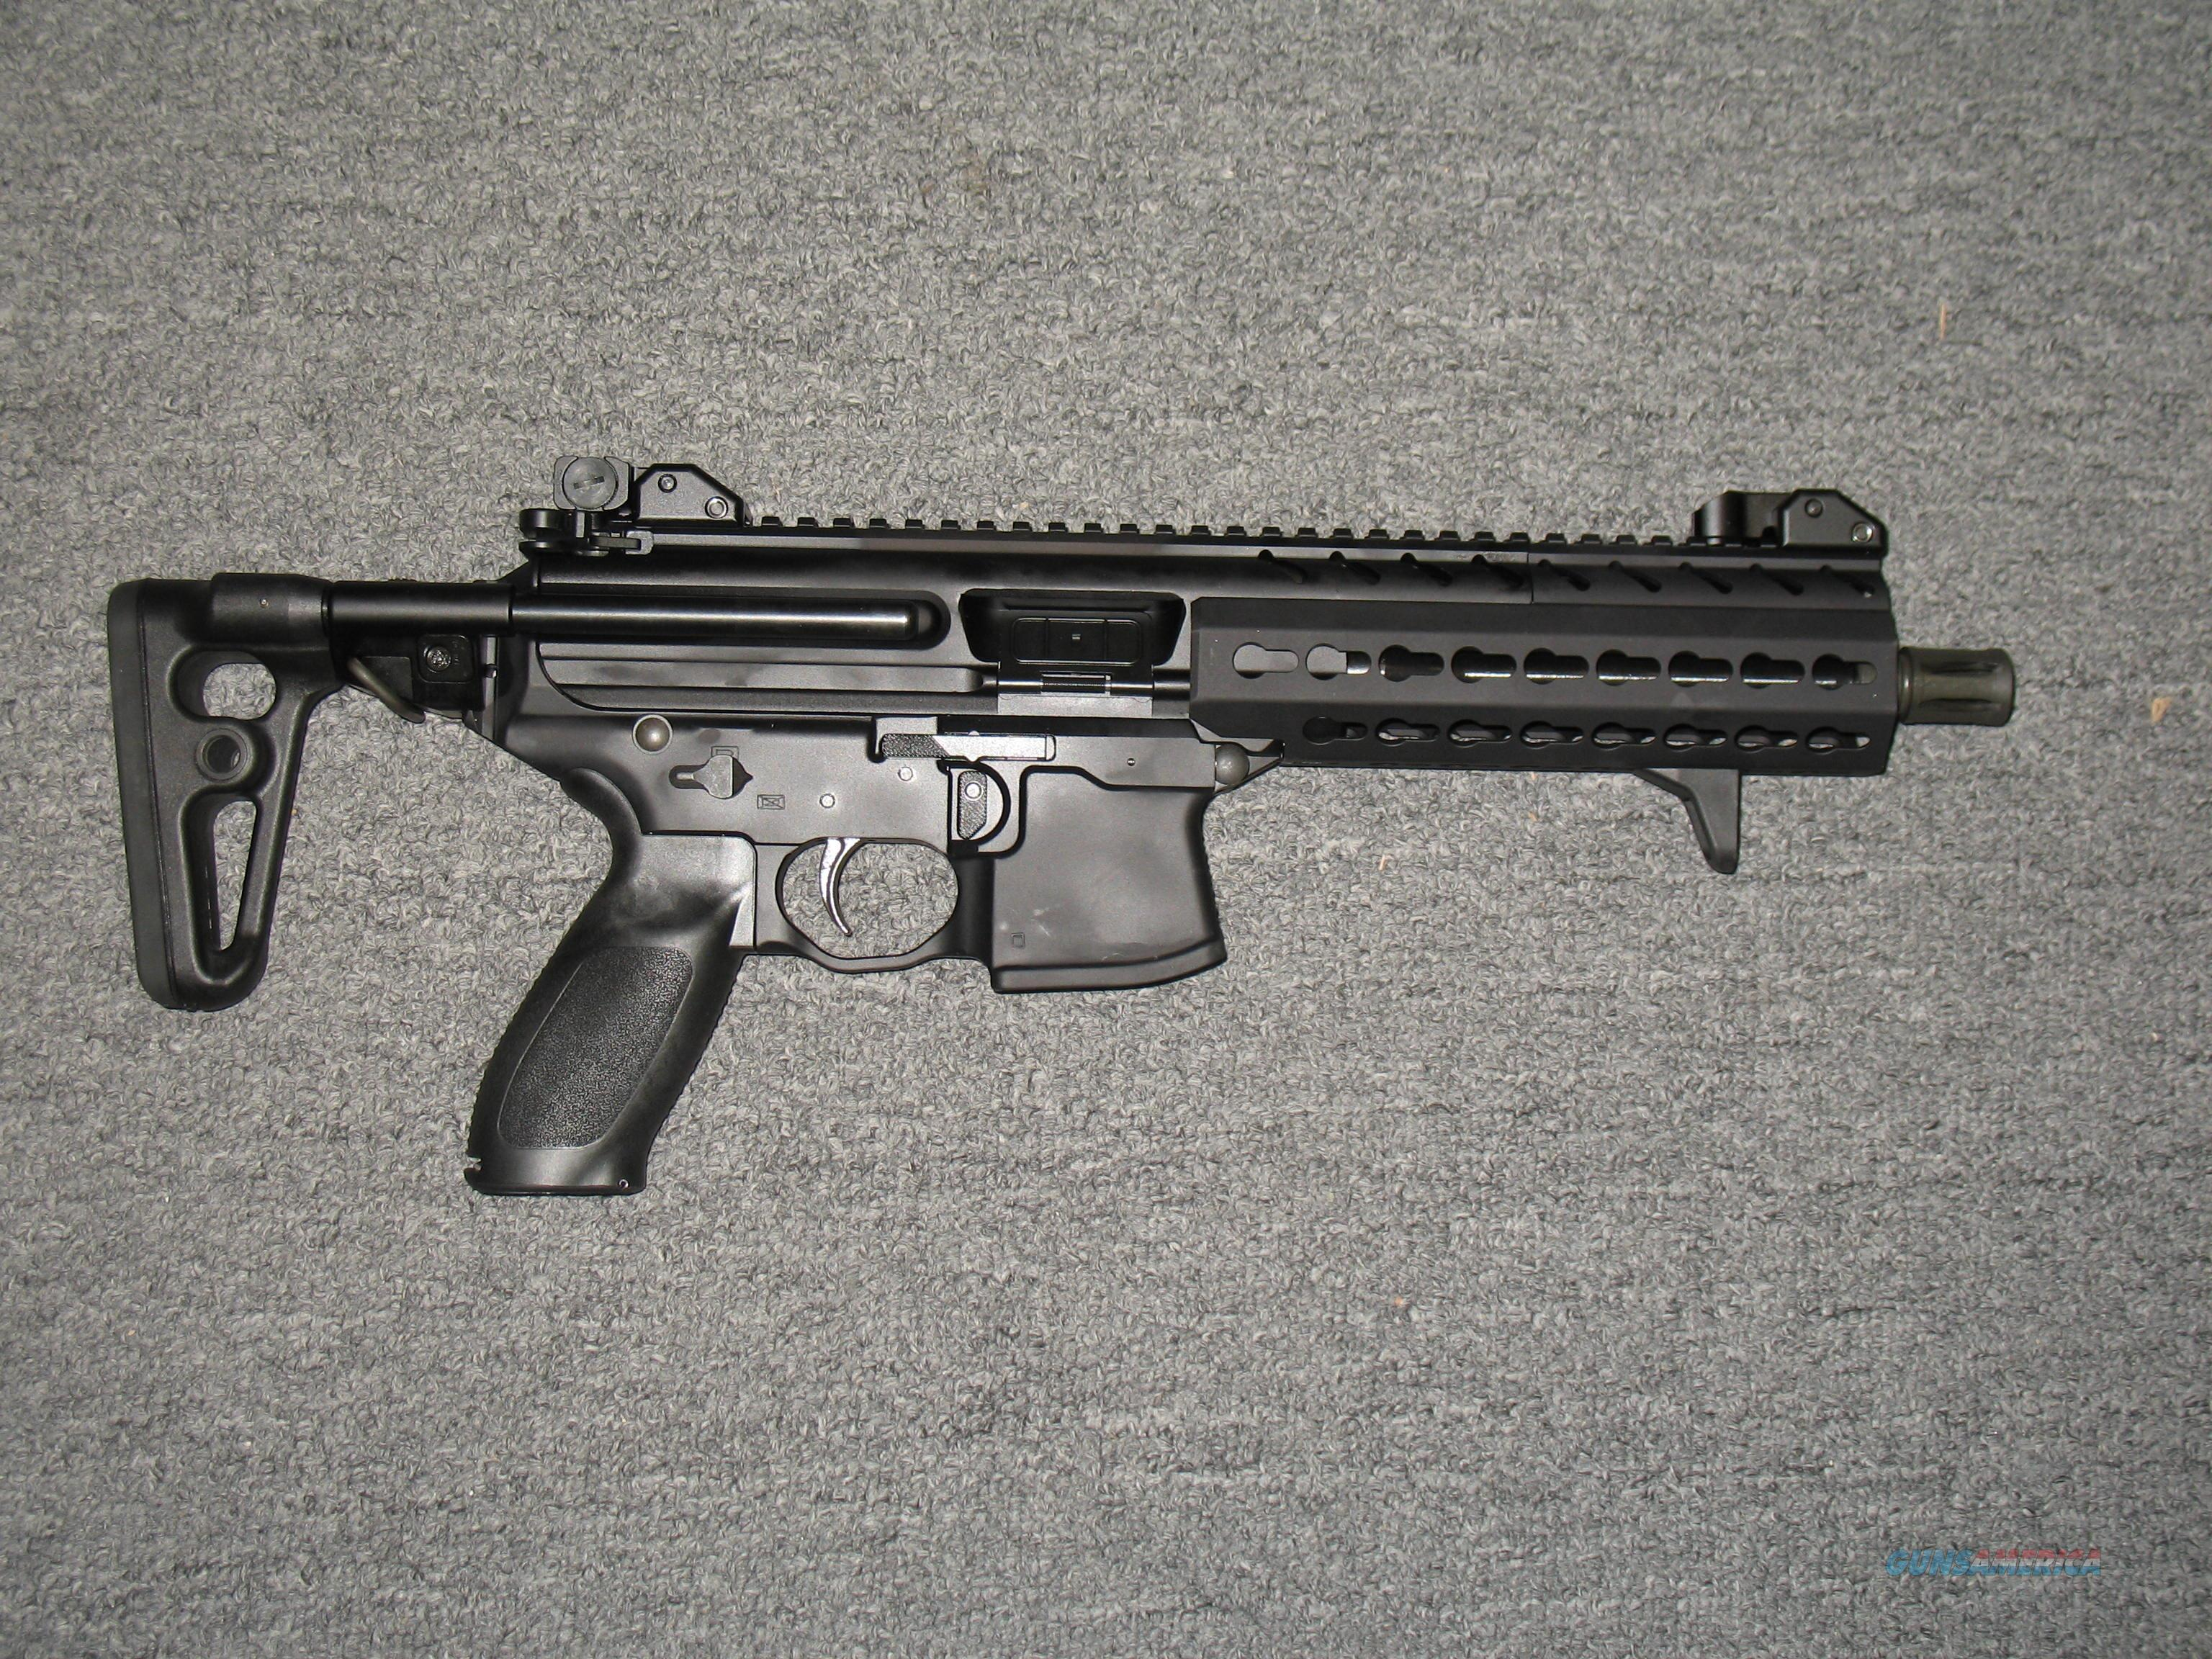 Sig Sauer MPX Short barreled rifle (Class III) Key Mod fore arm  Guns > Rifles > Sig - Sauer/Sigarms Rifles